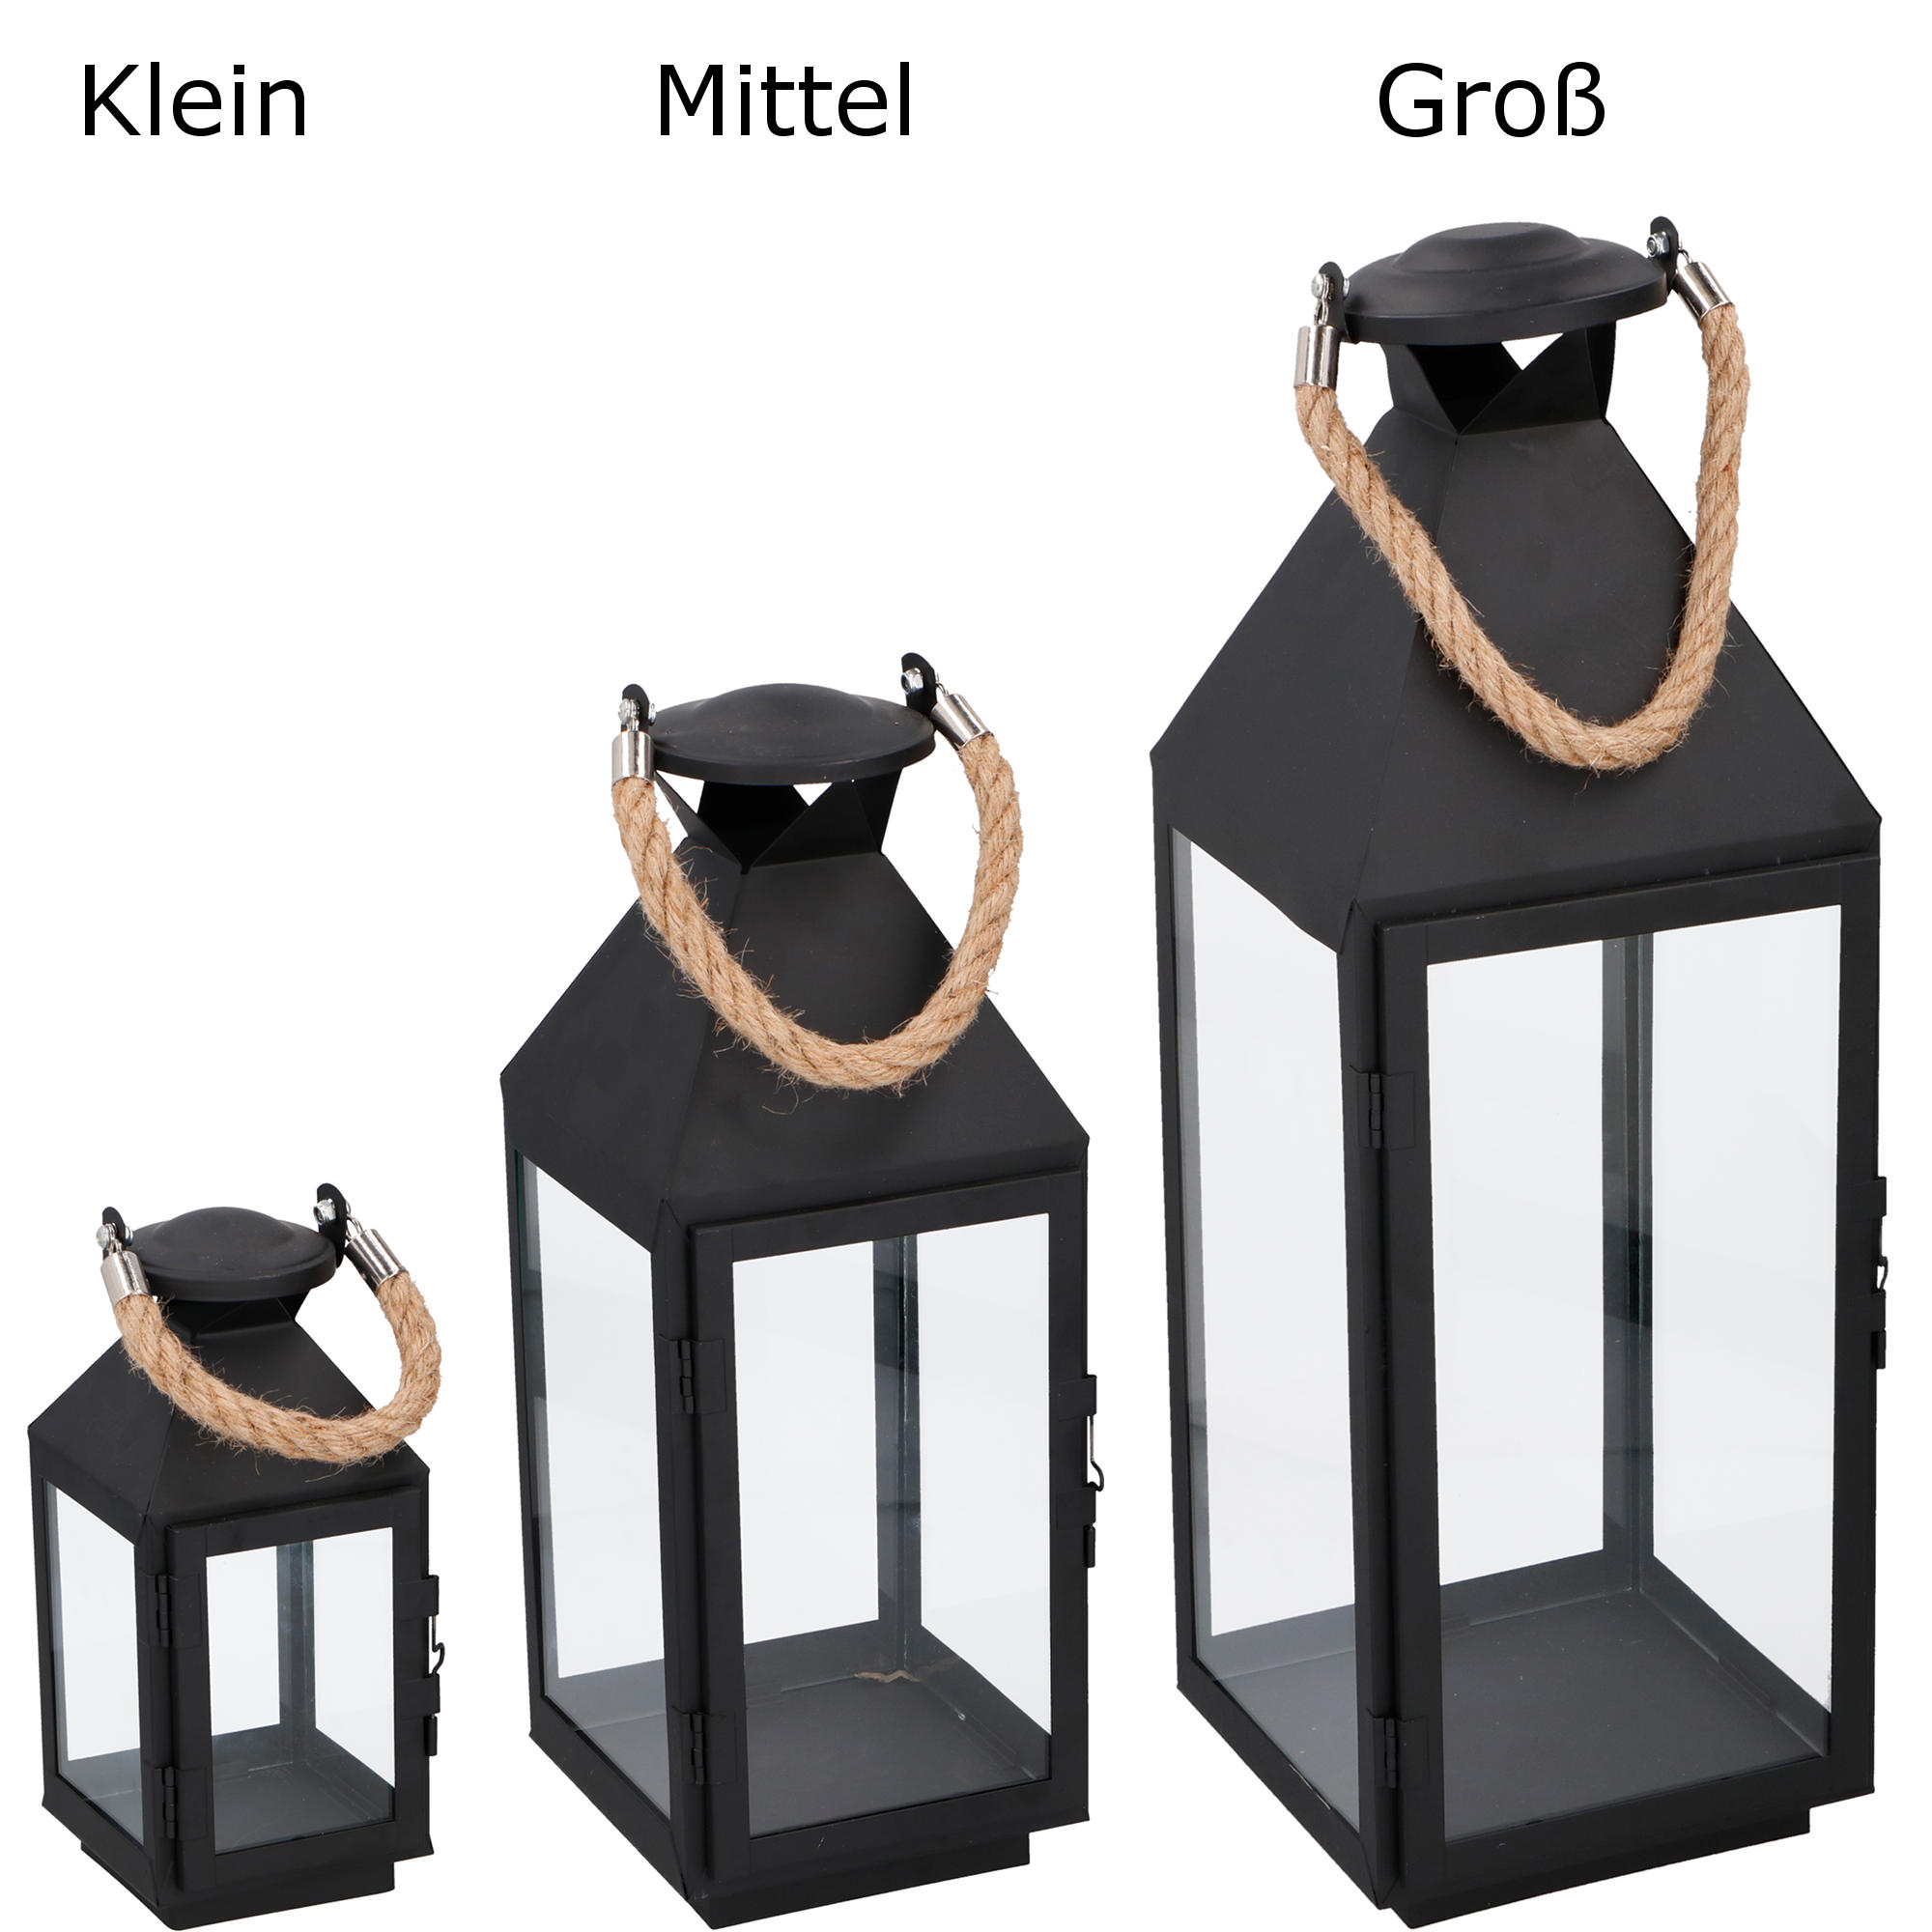 laterne metall 1 windlicht dekoration kerze f r garten. Black Bedroom Furniture Sets. Home Design Ideas